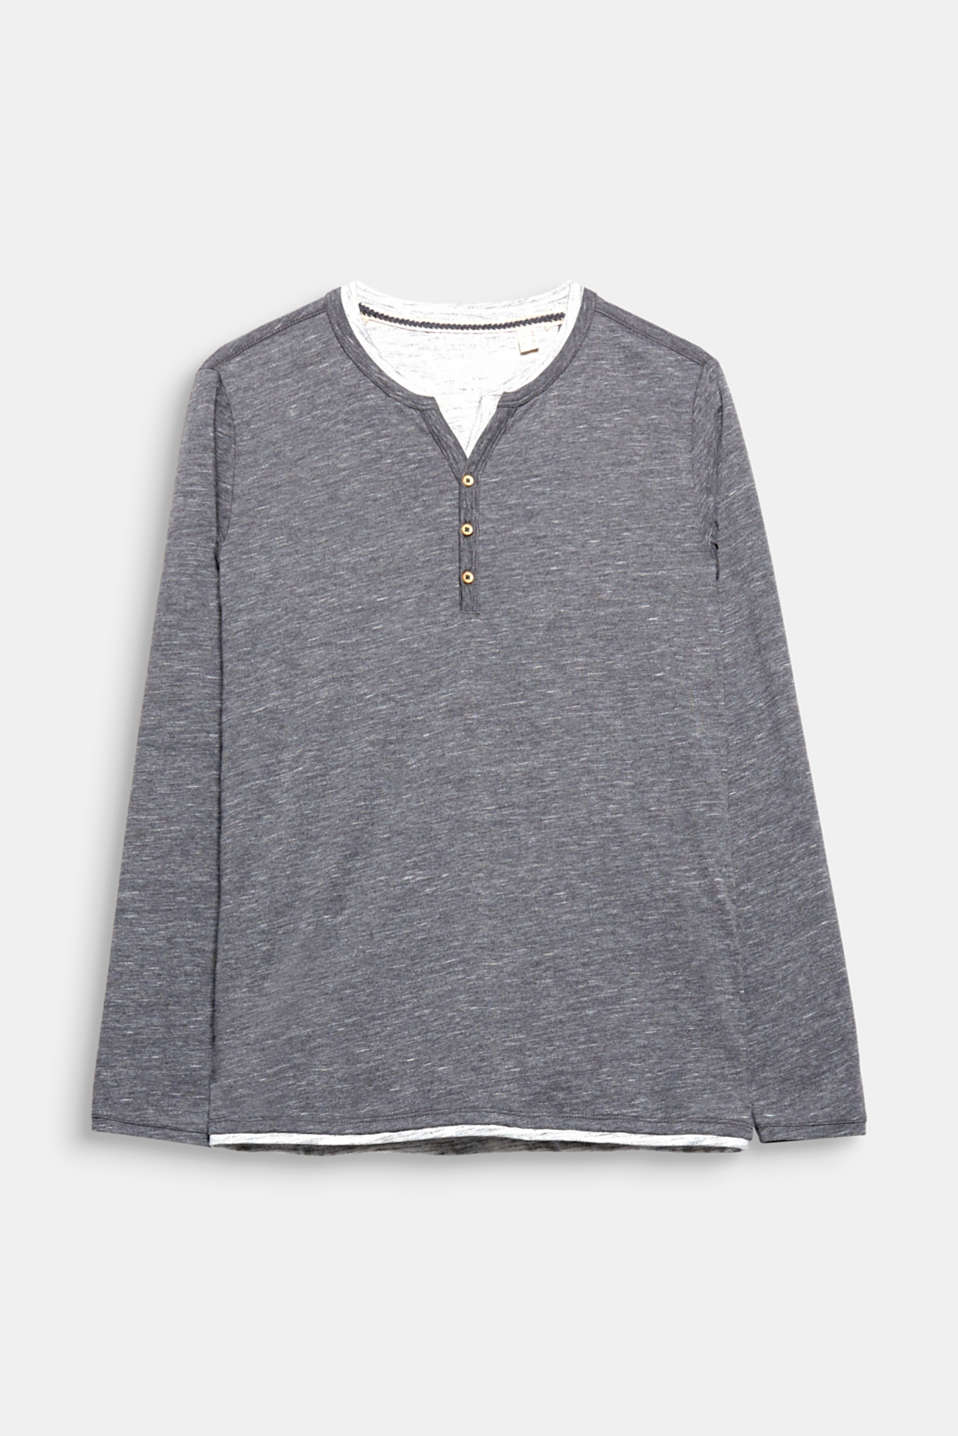 Long sleeved Henley with layer effects, made of soft slub jersey